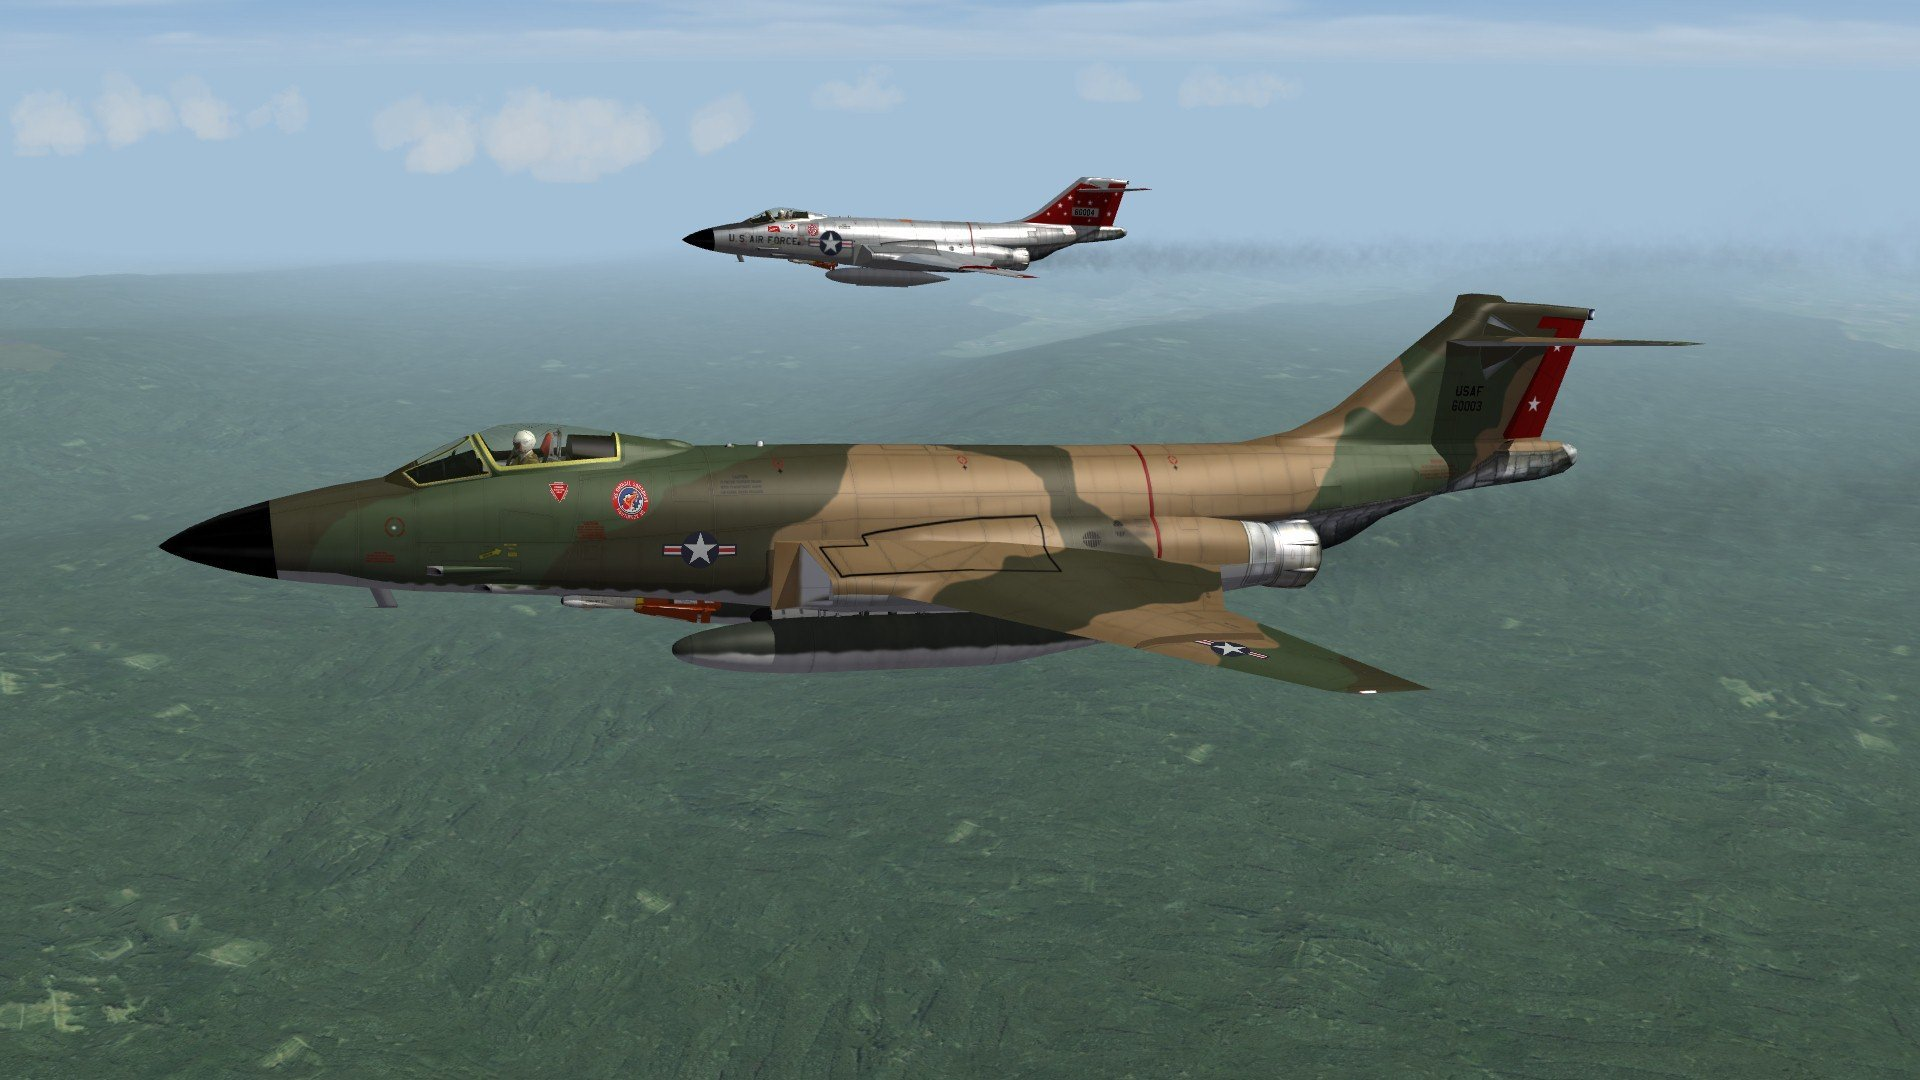 F-101 Voodoo Escort Fighter, as it was meant to be.